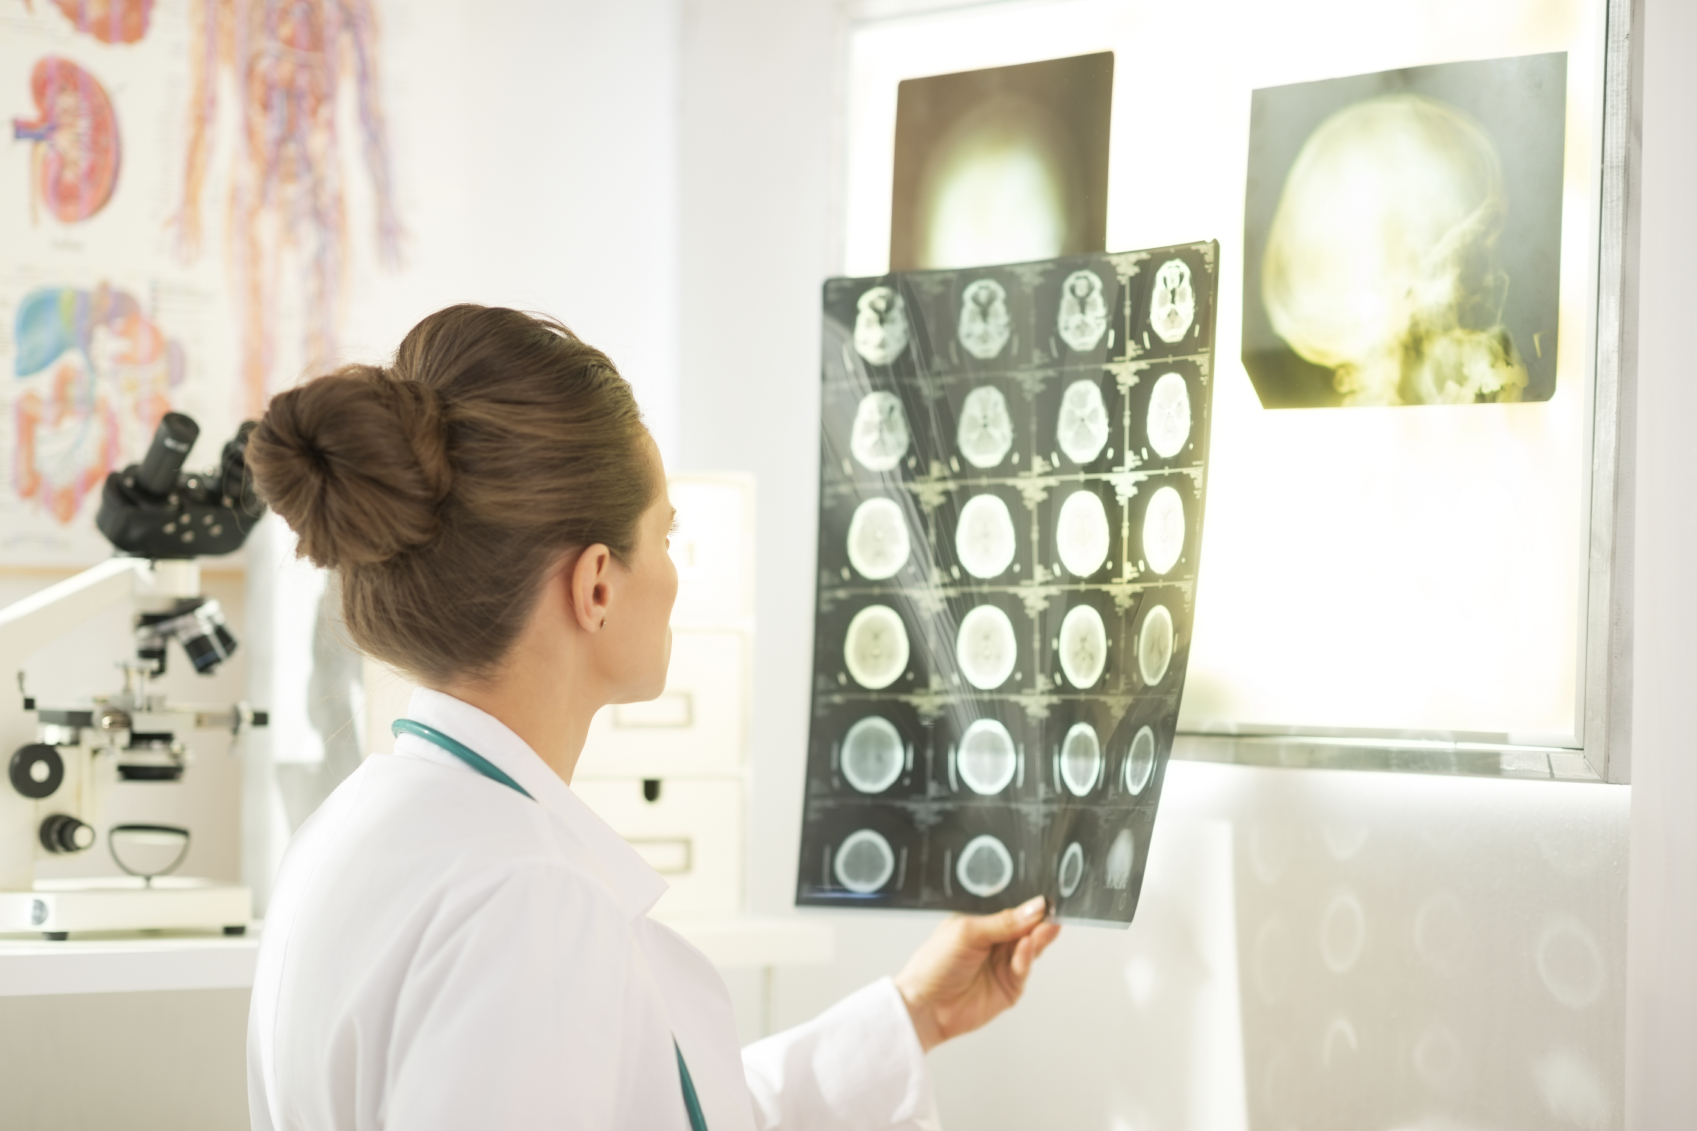 Oncologist examining scans from a cancer patient